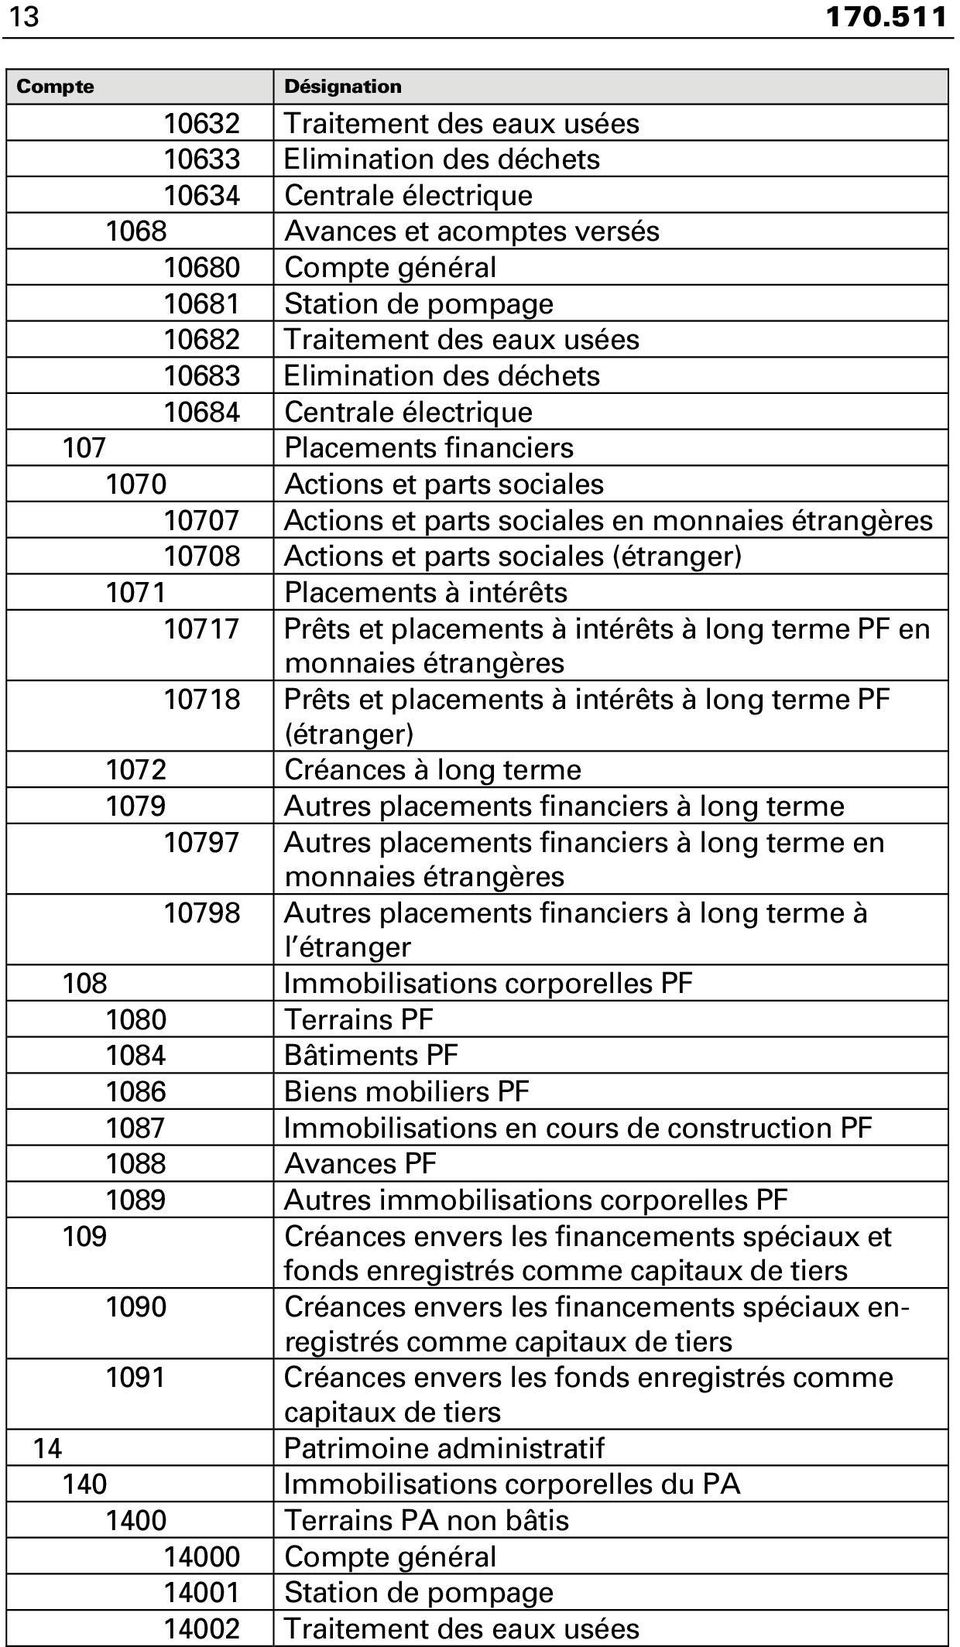 10683 Elimination des déchets 10684 Centrale électrique 107 Placements financiers 1070 Actions et parts sociales 10707 Actions et parts sociales en monnaies étrangères 10708 Actions et parts sociales